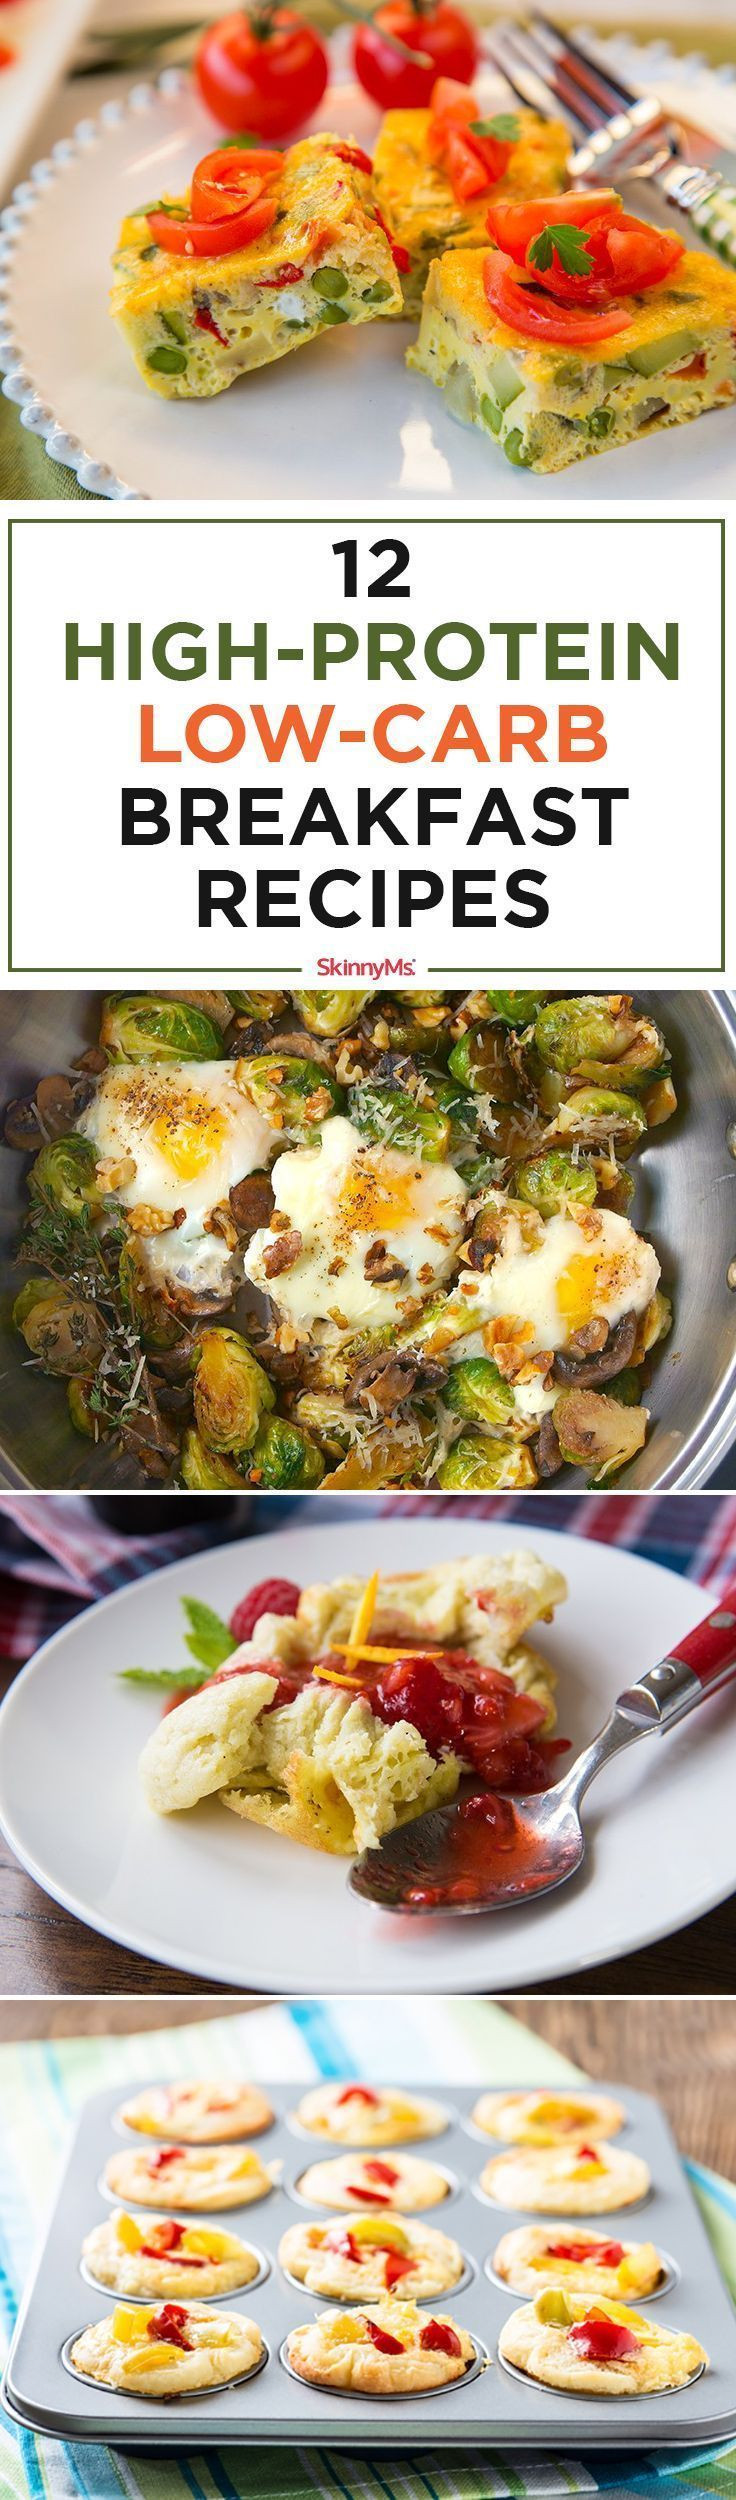 High Protein Low Carb Snacks Recipes  29 best images about Healthy snacks on Pinterest